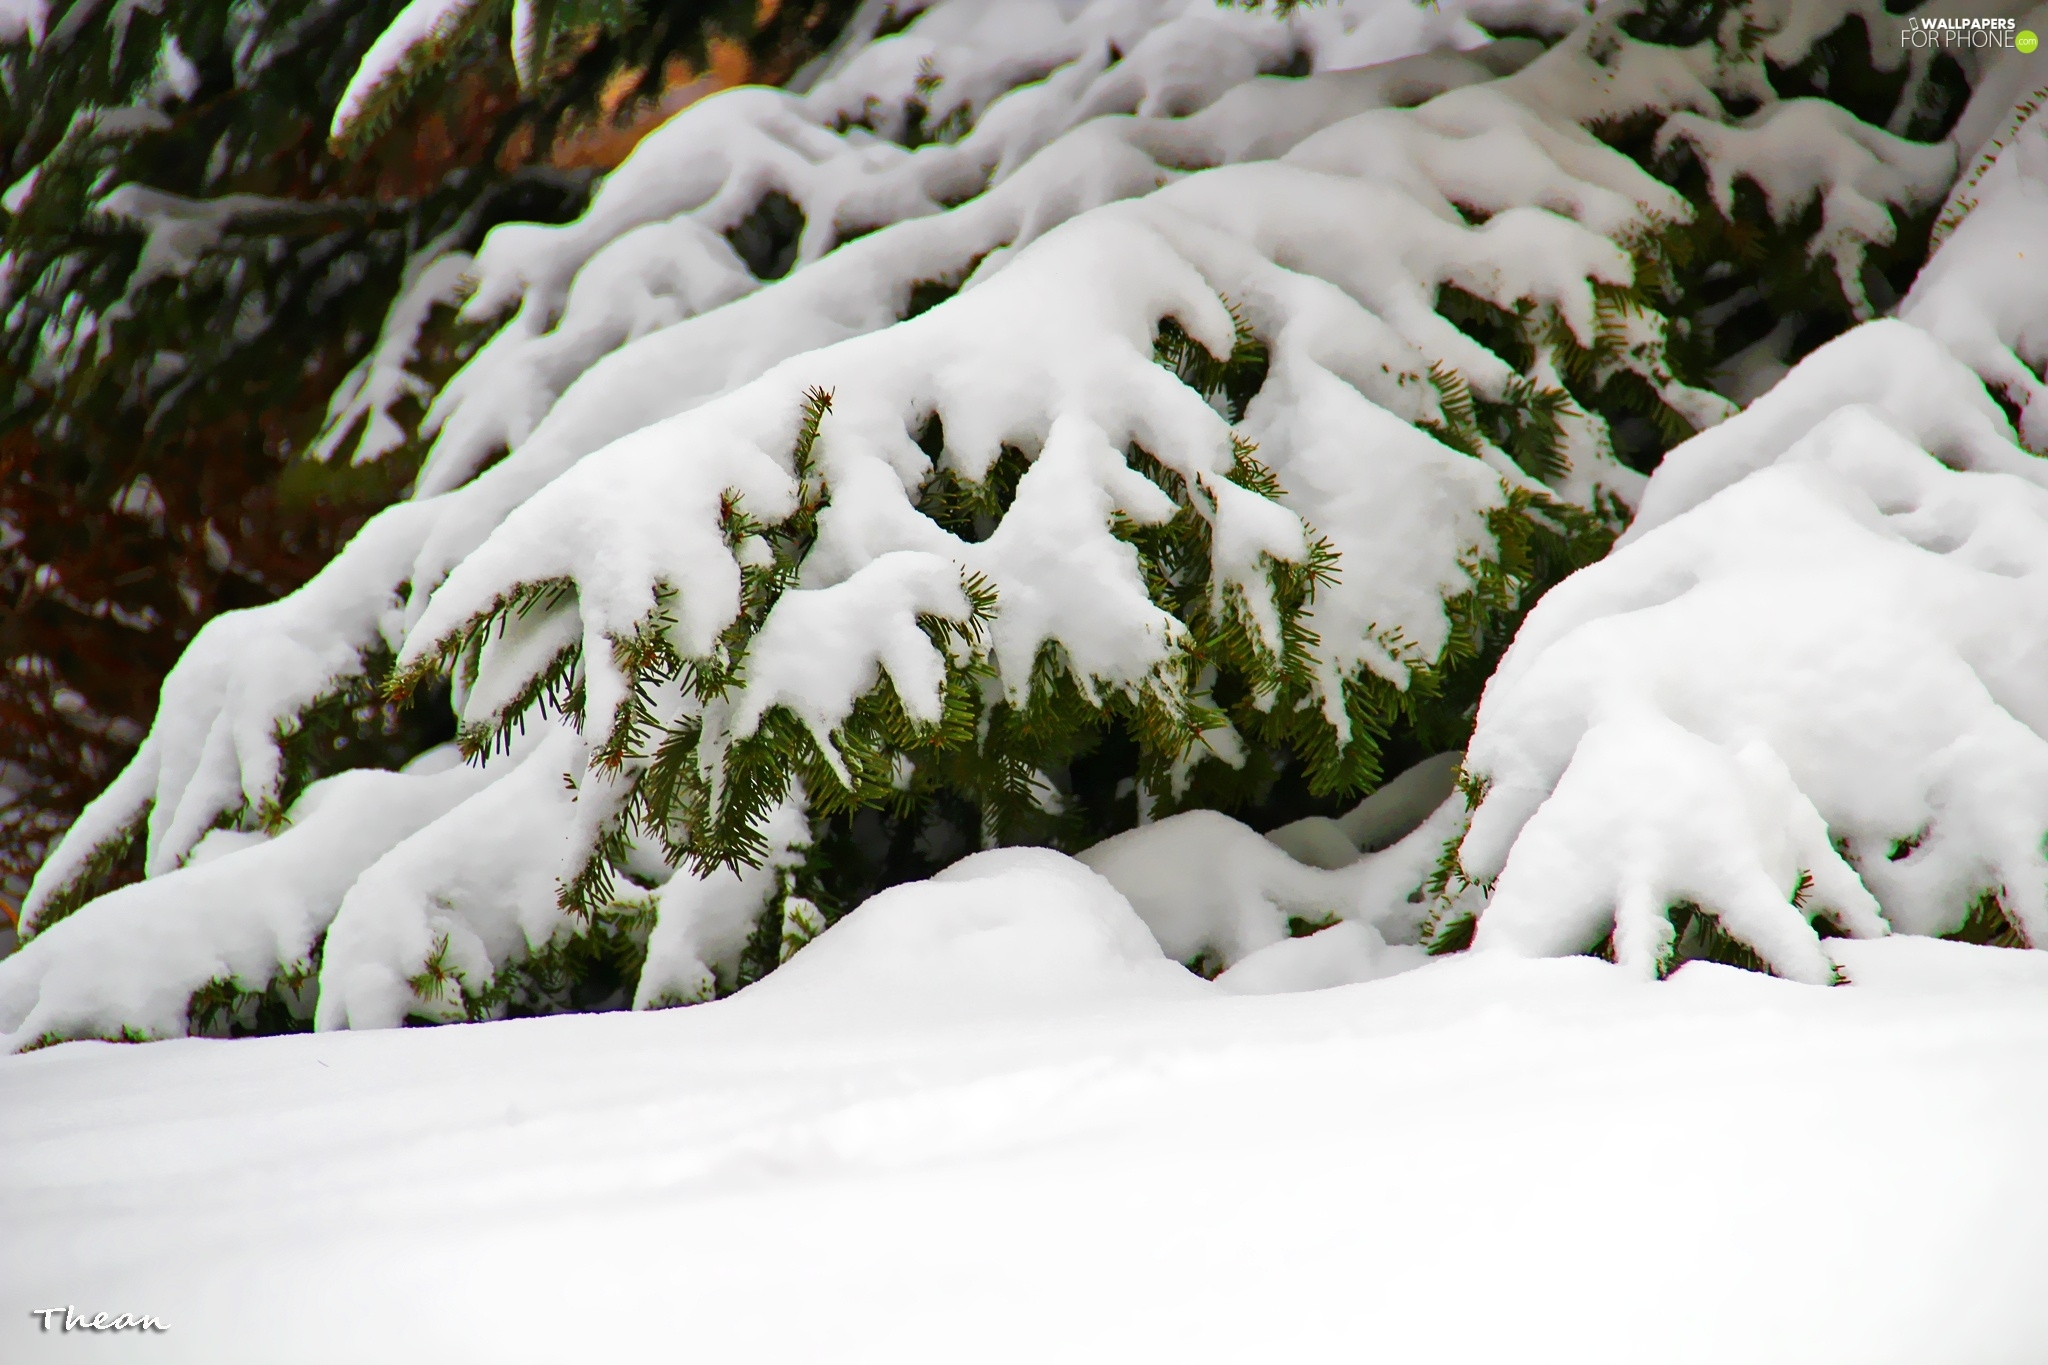 winter, snow, fir